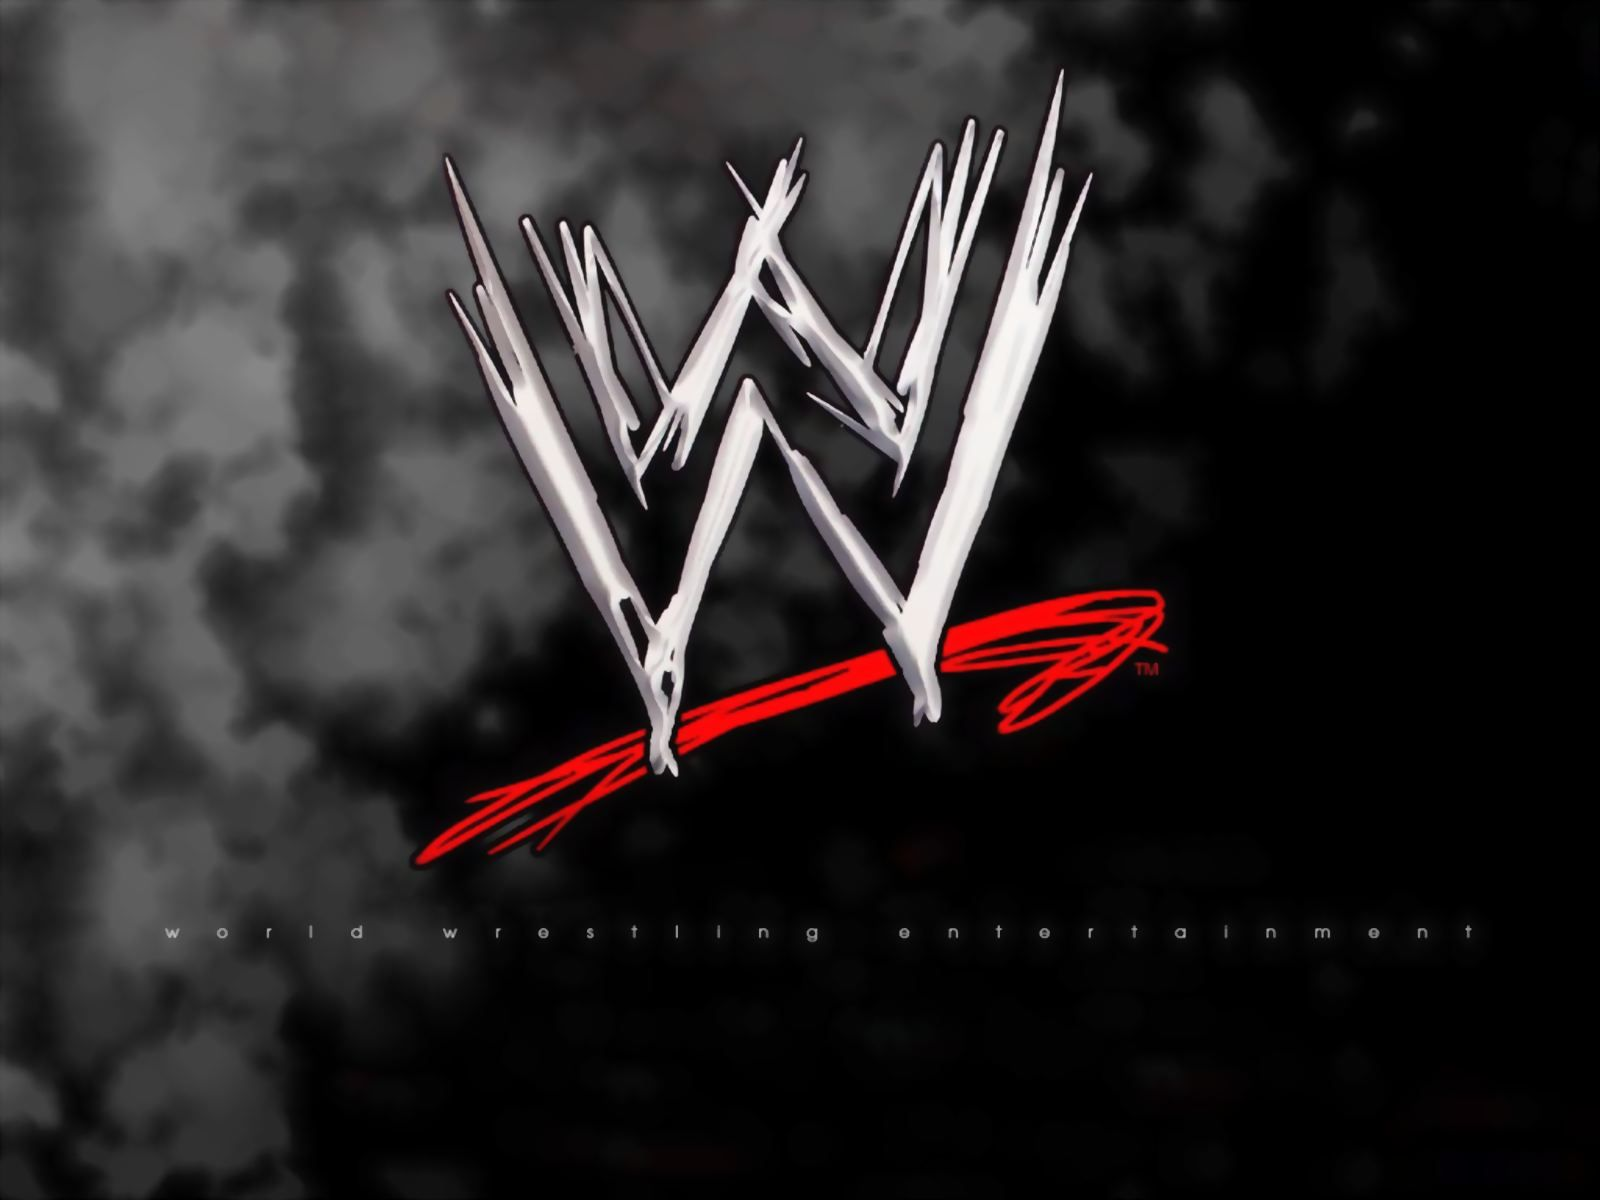 WWE Logo Wallpaper - Free Download Wallpaper from wallpaperate.com